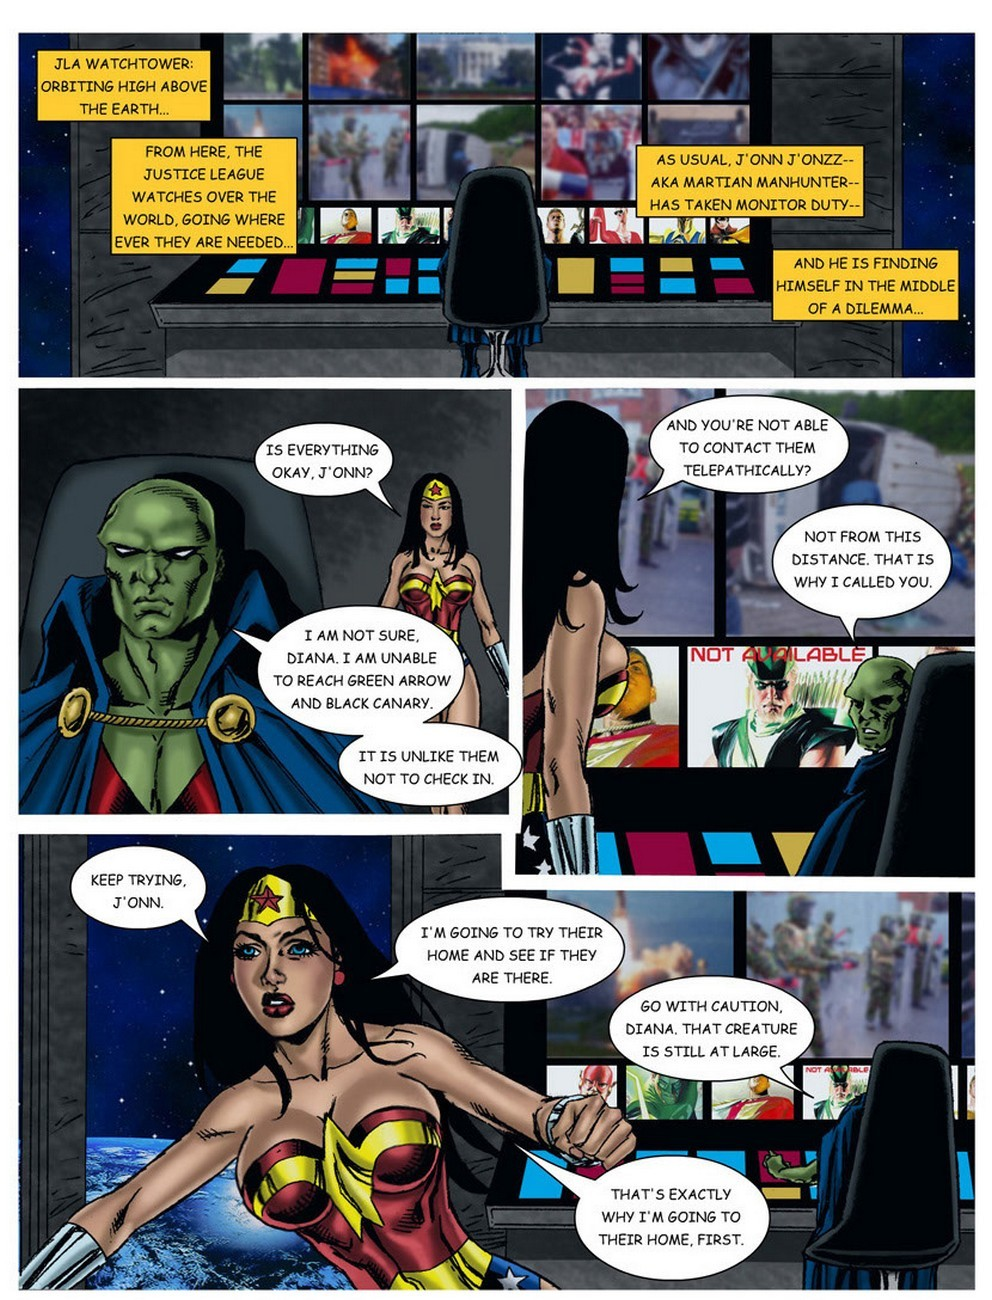 Wonder Woman - In The Clutches Of The Predator 3 12 free sex comic